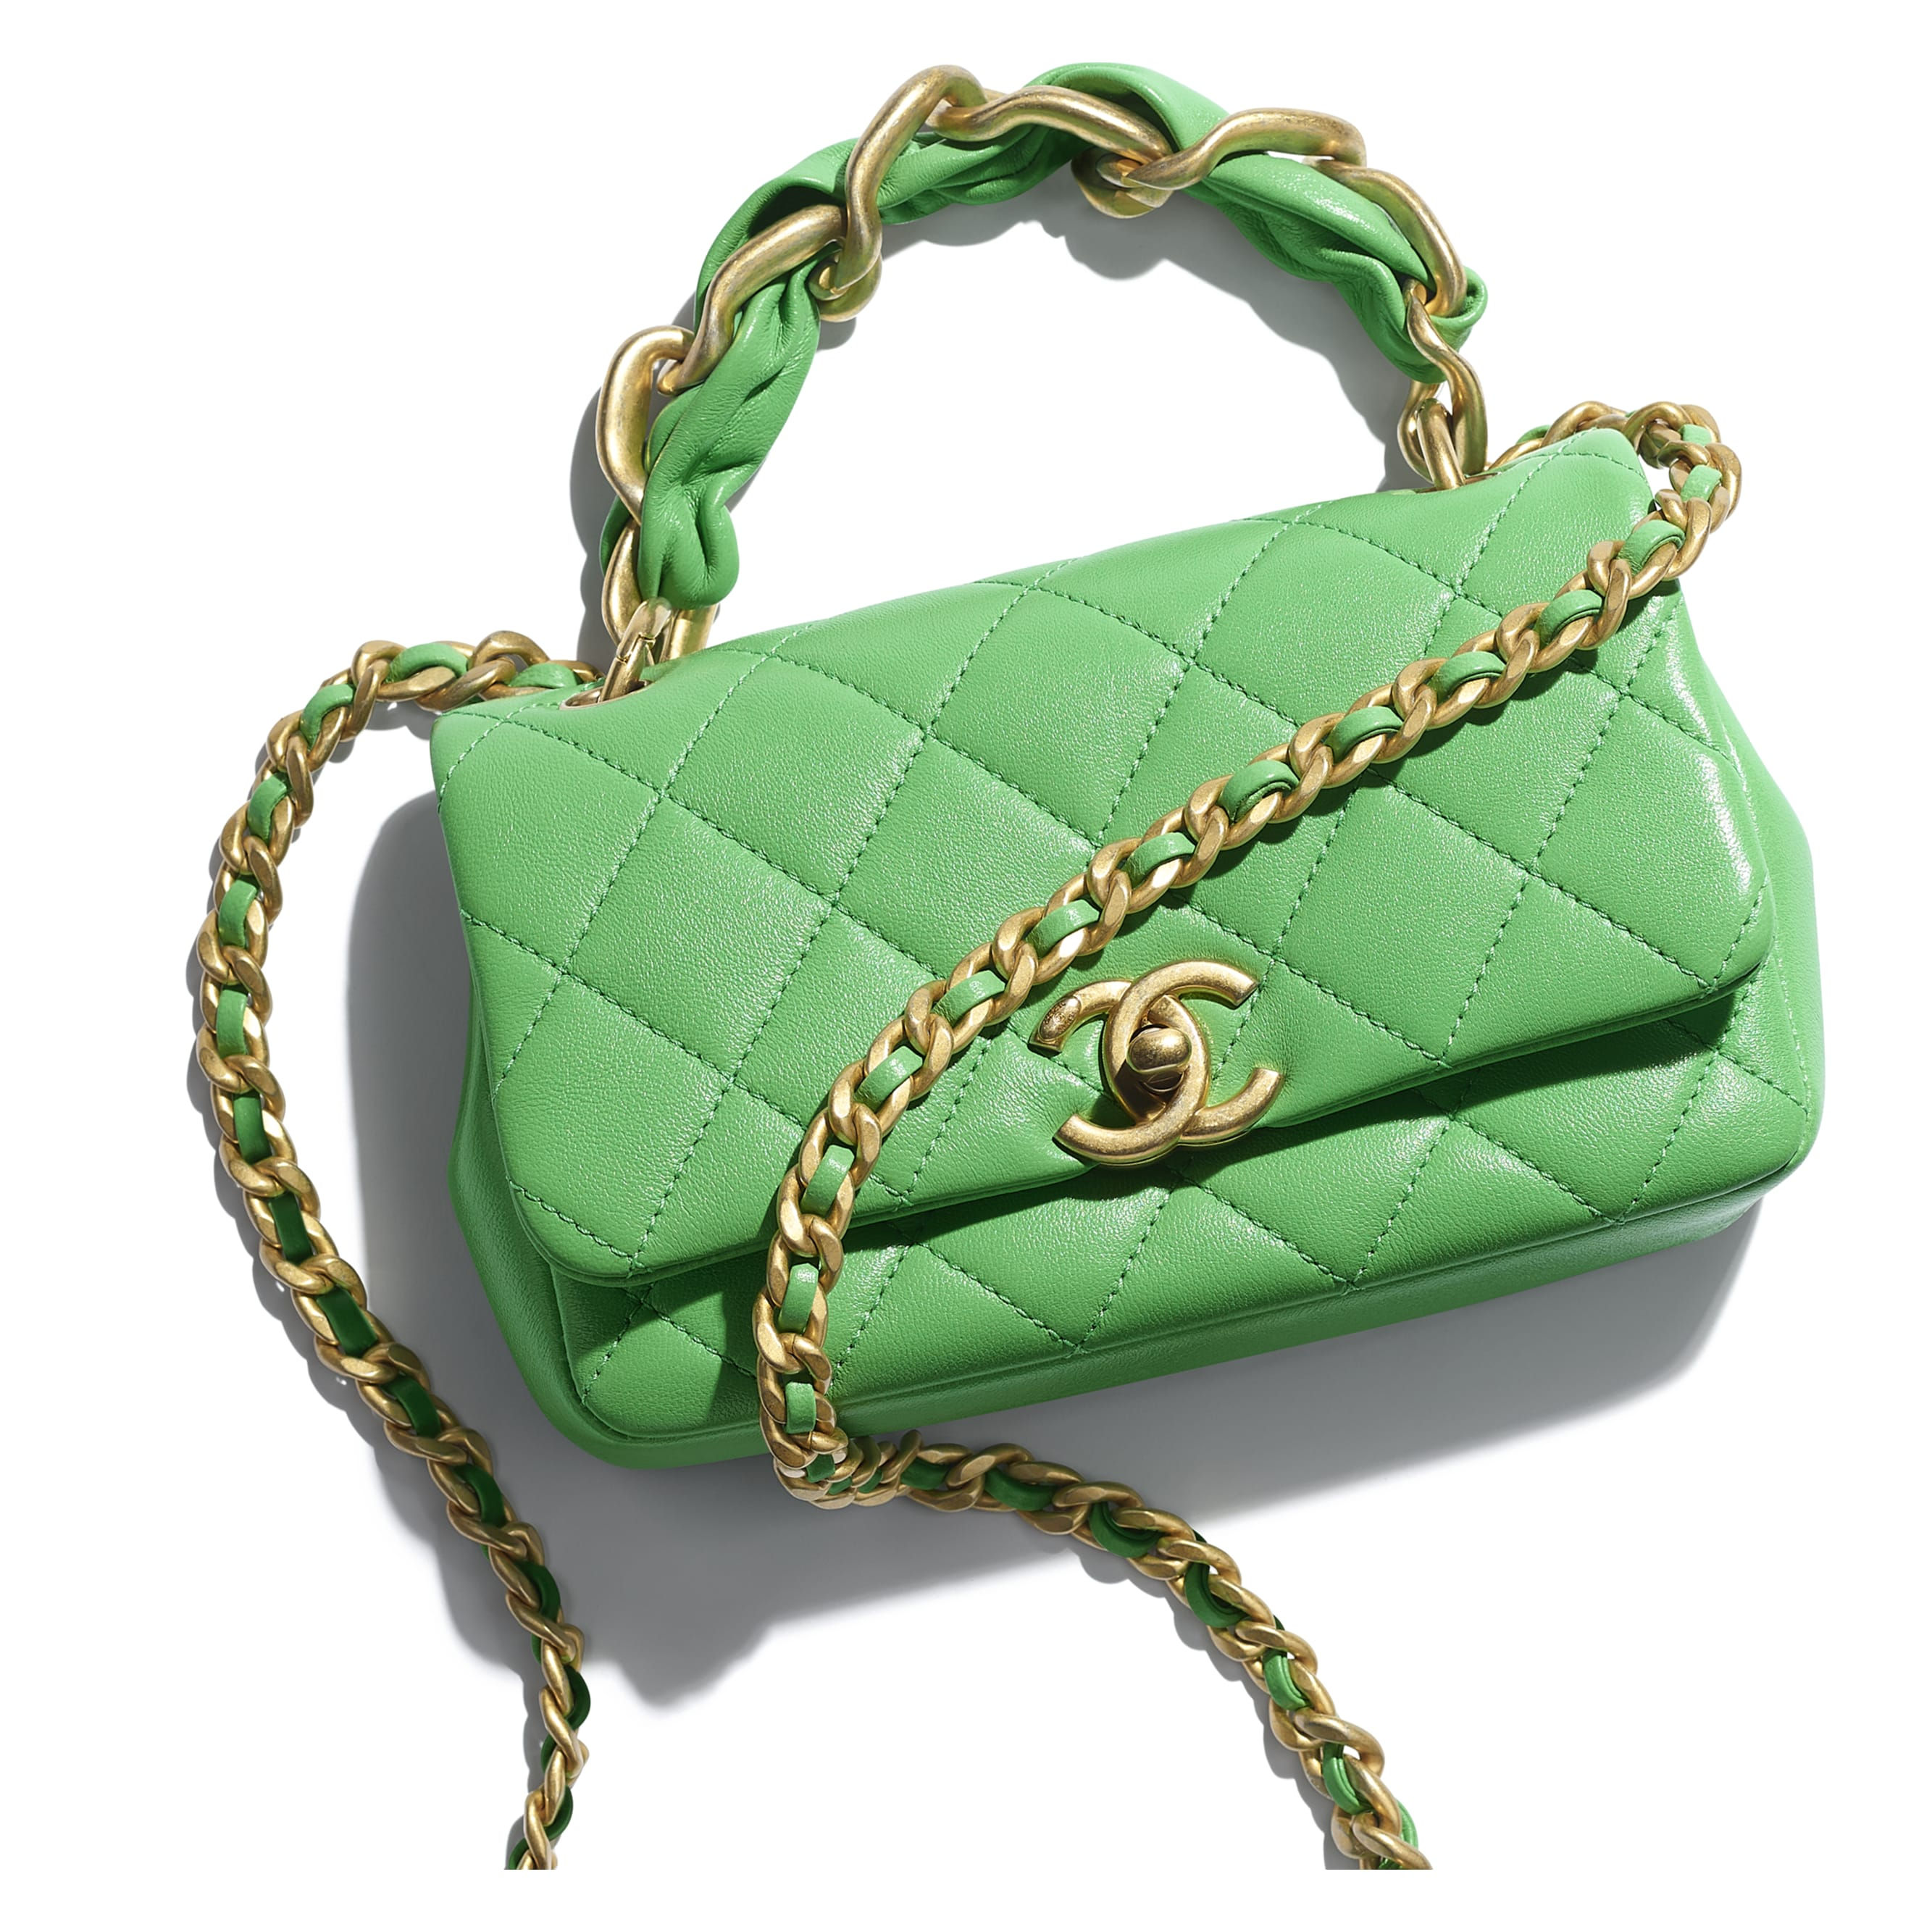 Small Flap Bag - Green - Shiny Lambskin & Gold-Tone Metal - CHANEL - Extra view - see standard sized version